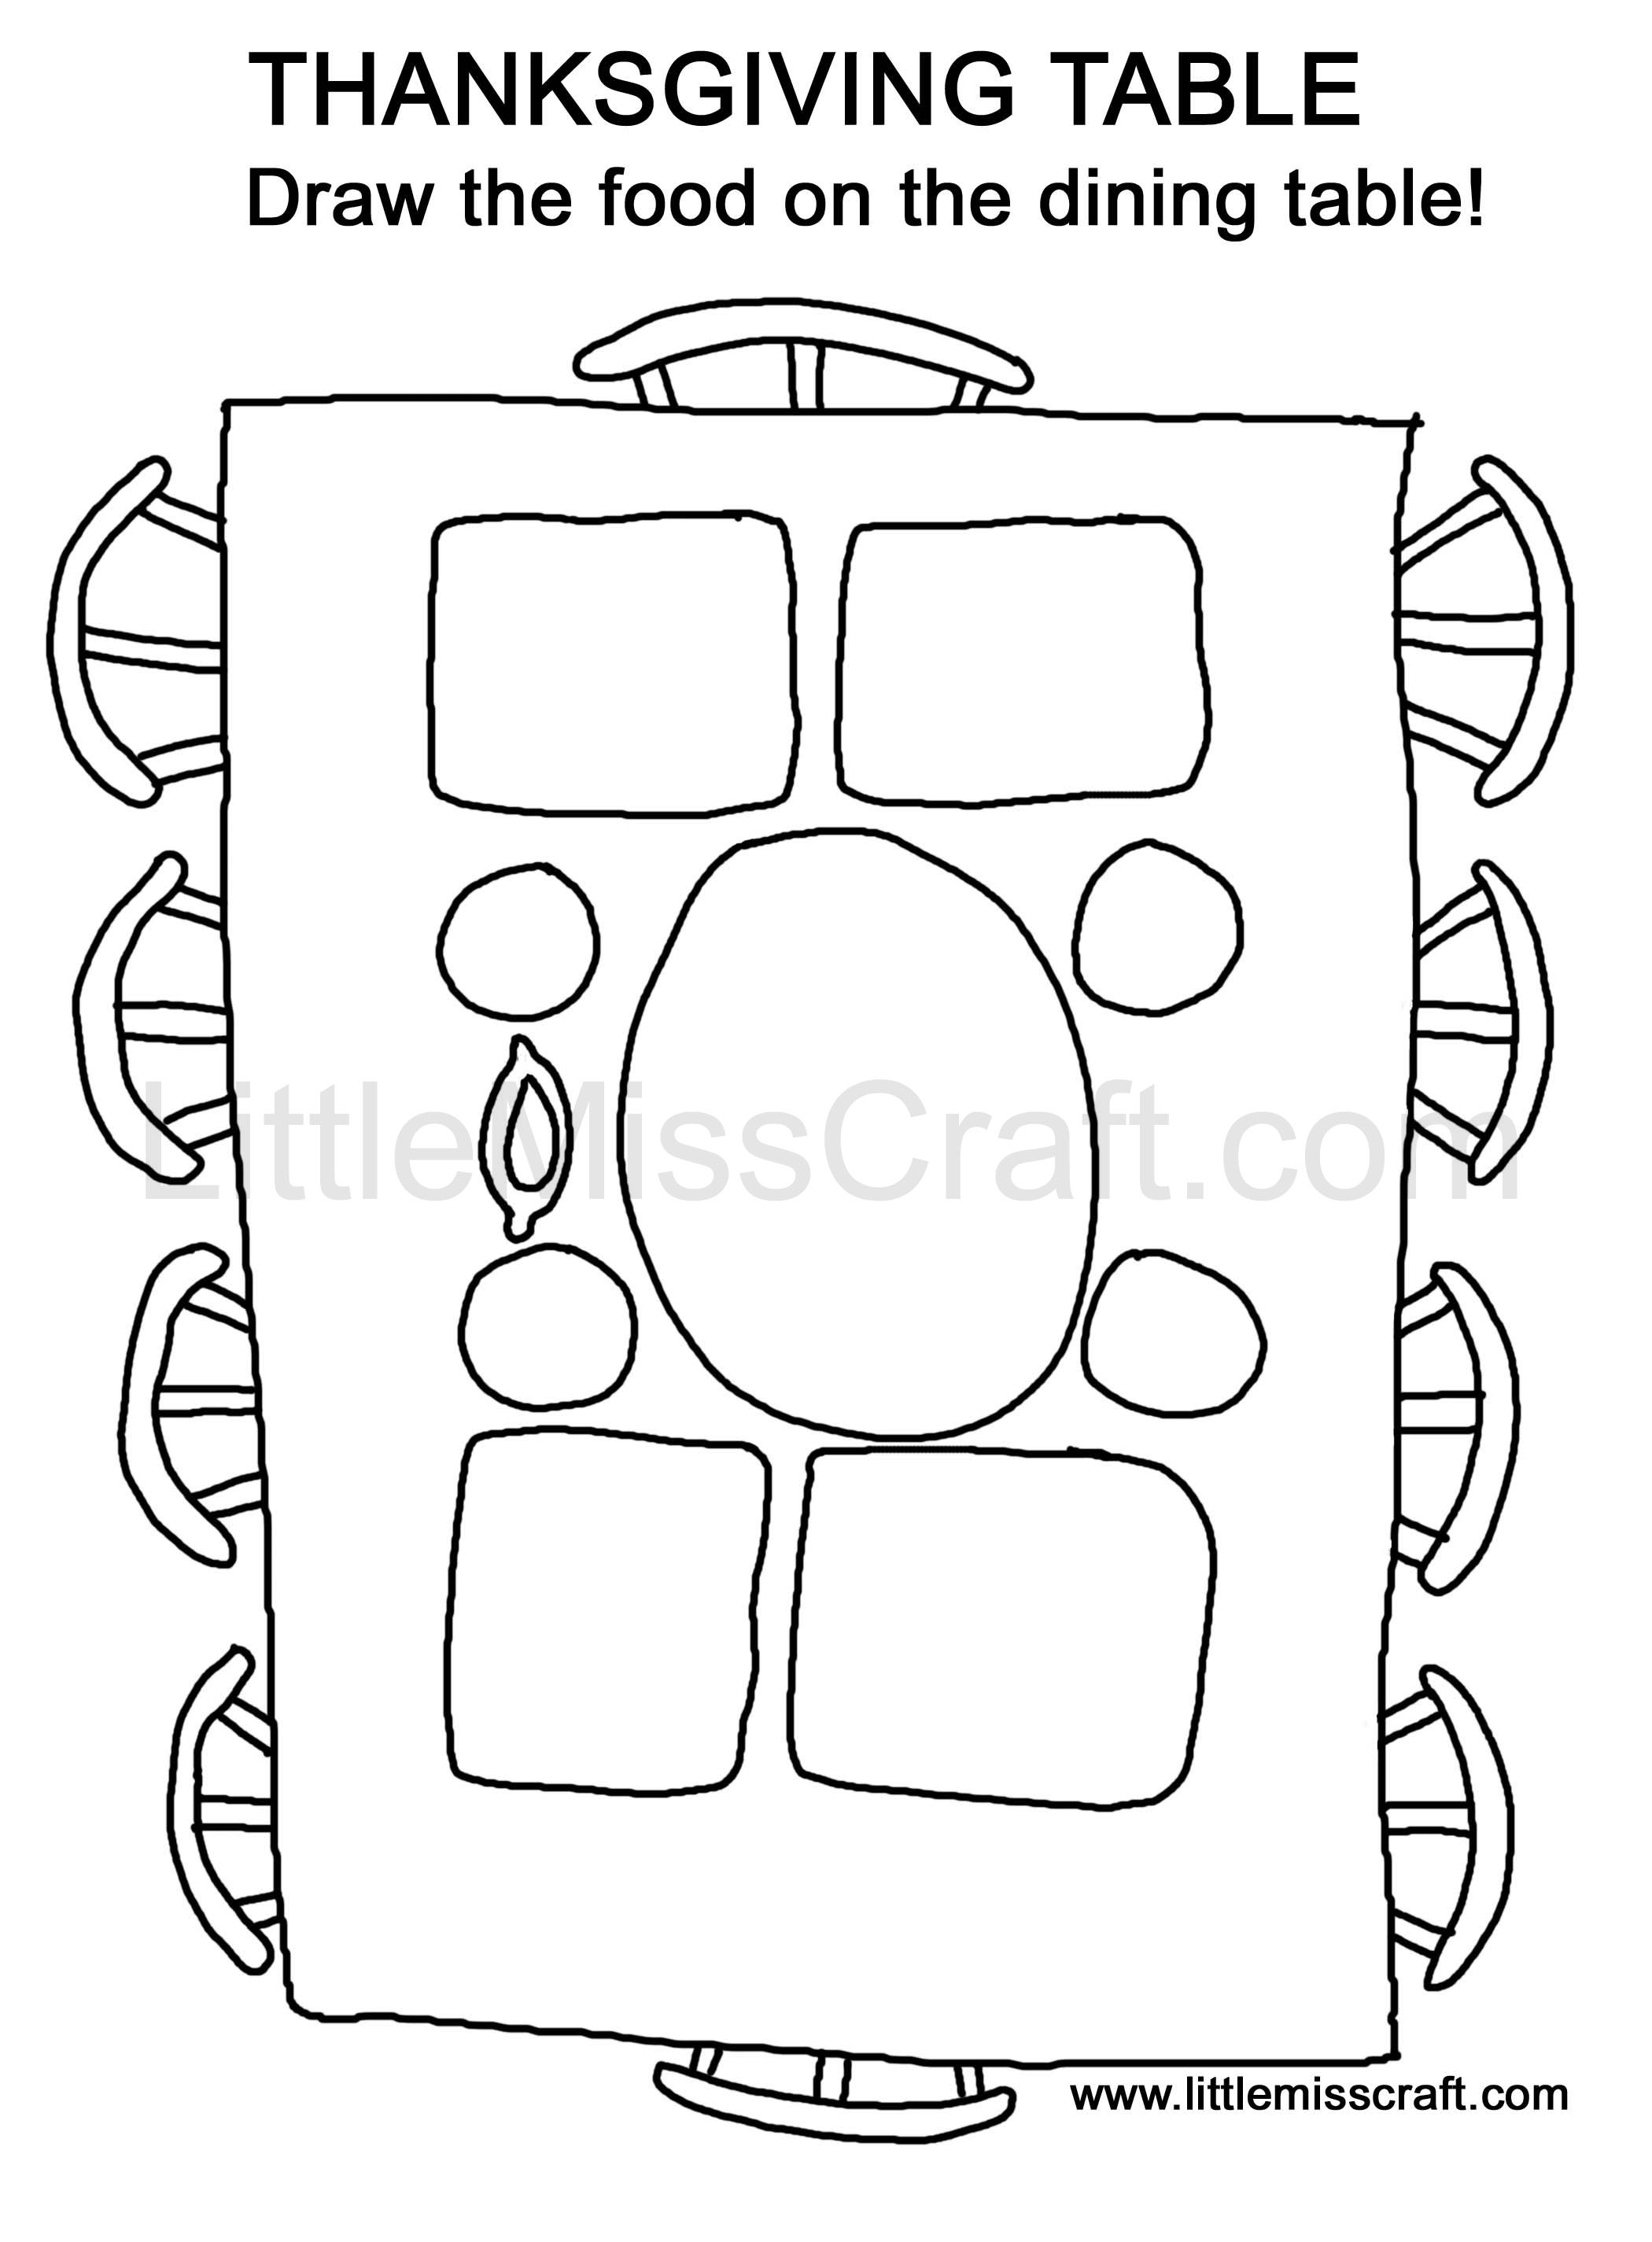 Crafts Thanksgiving Table Doodle Coloring Page - thanksgiving meal coloring pages